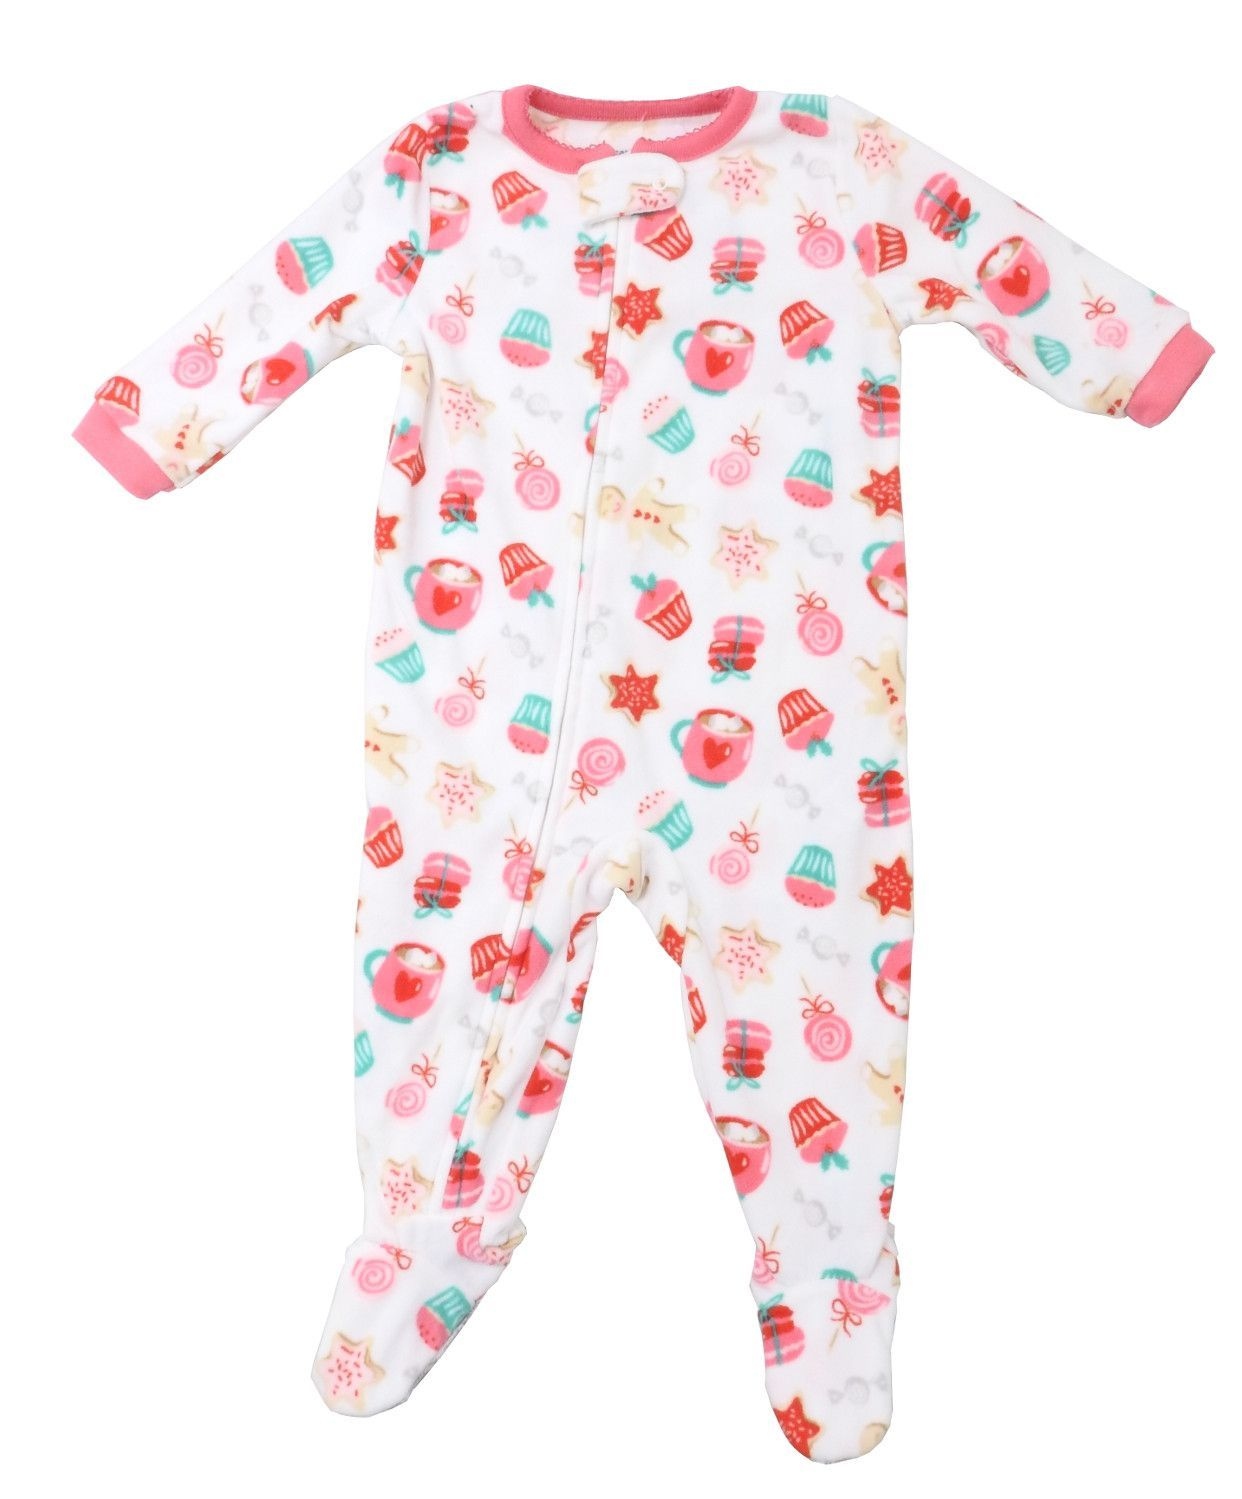 Carters Baby Girls Size 12 Months Fleece Footed Gingerbread Sleeper, Multi-Color